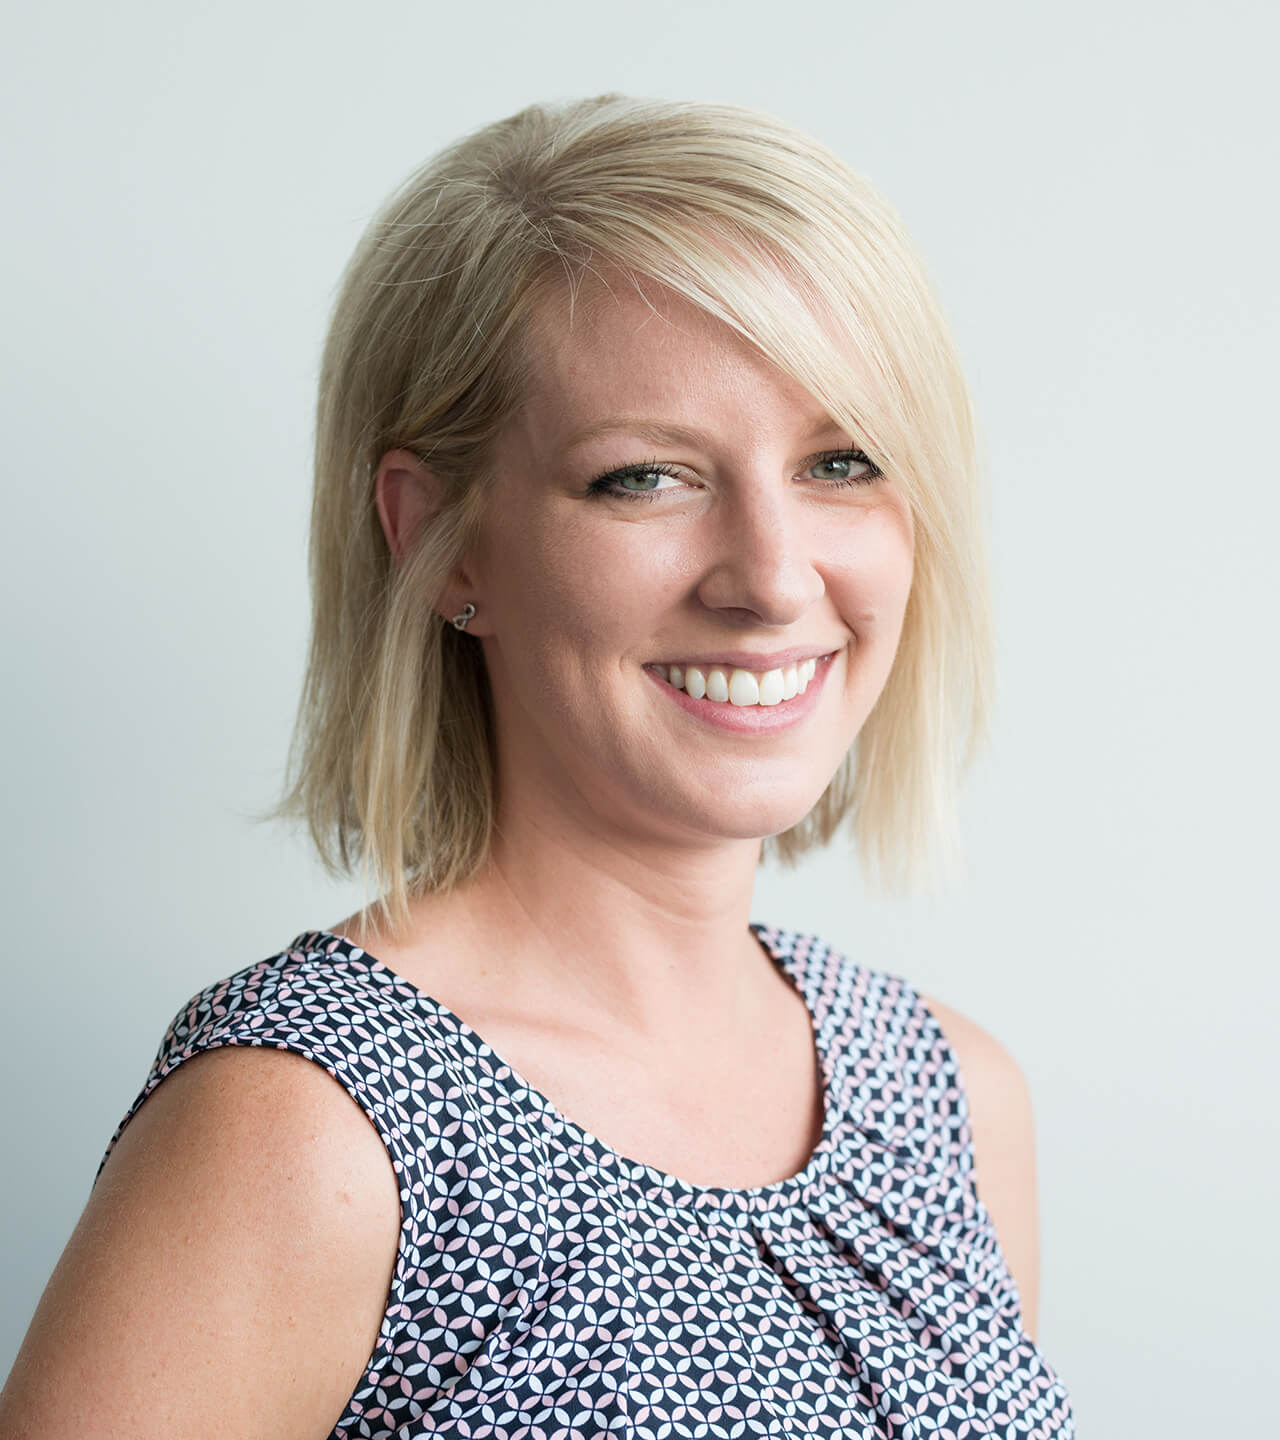 Bio shot of Rebecca Forrester, Digital Project Manager for Blue Flame Thinking.